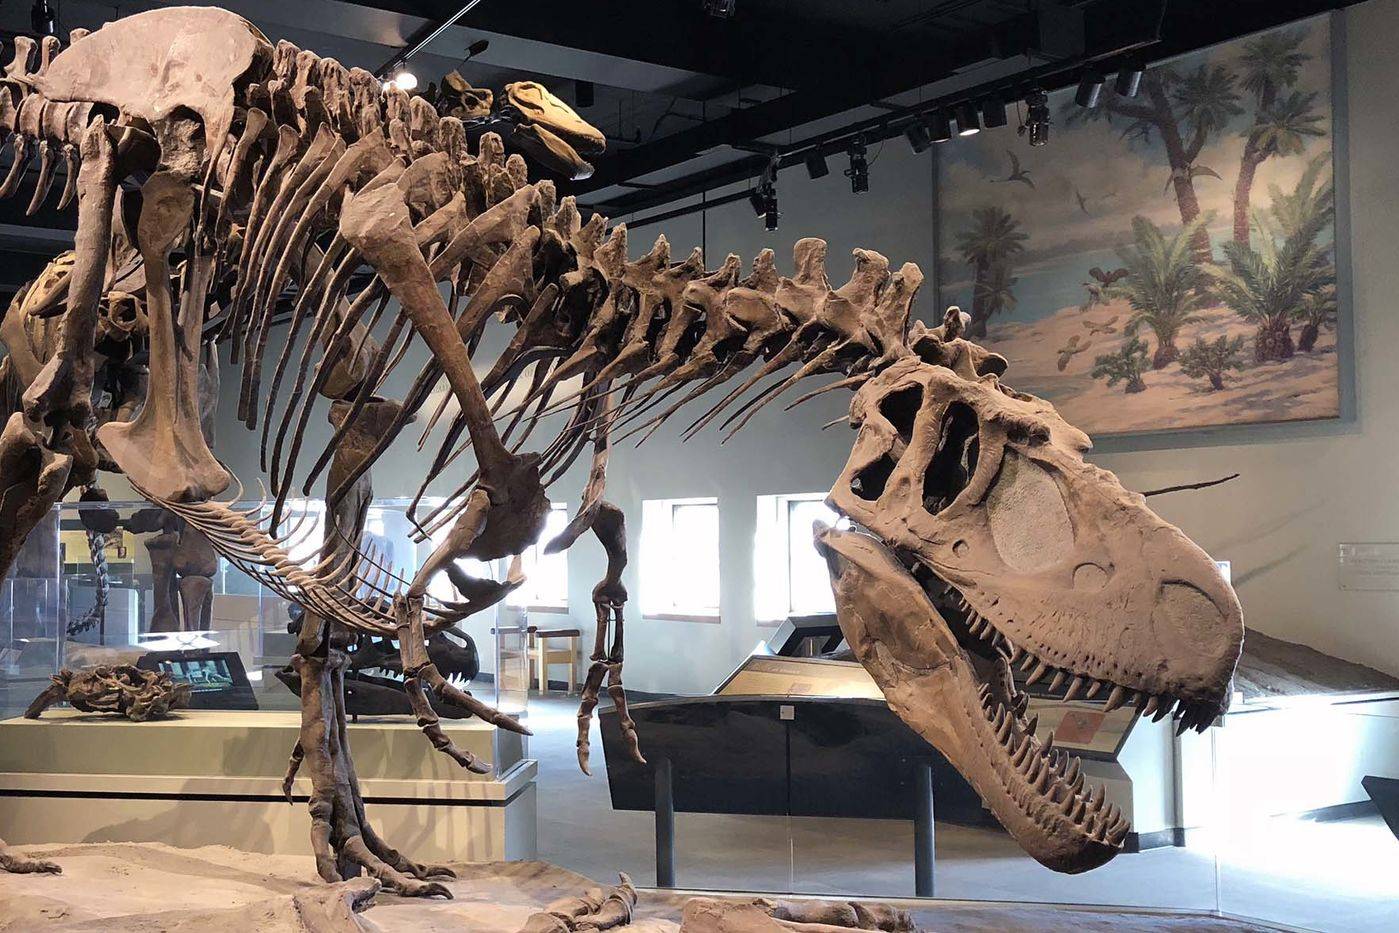 A large dinosaur skeleton standing on a brown surface and leaning forward menacingly, in a museum gallery